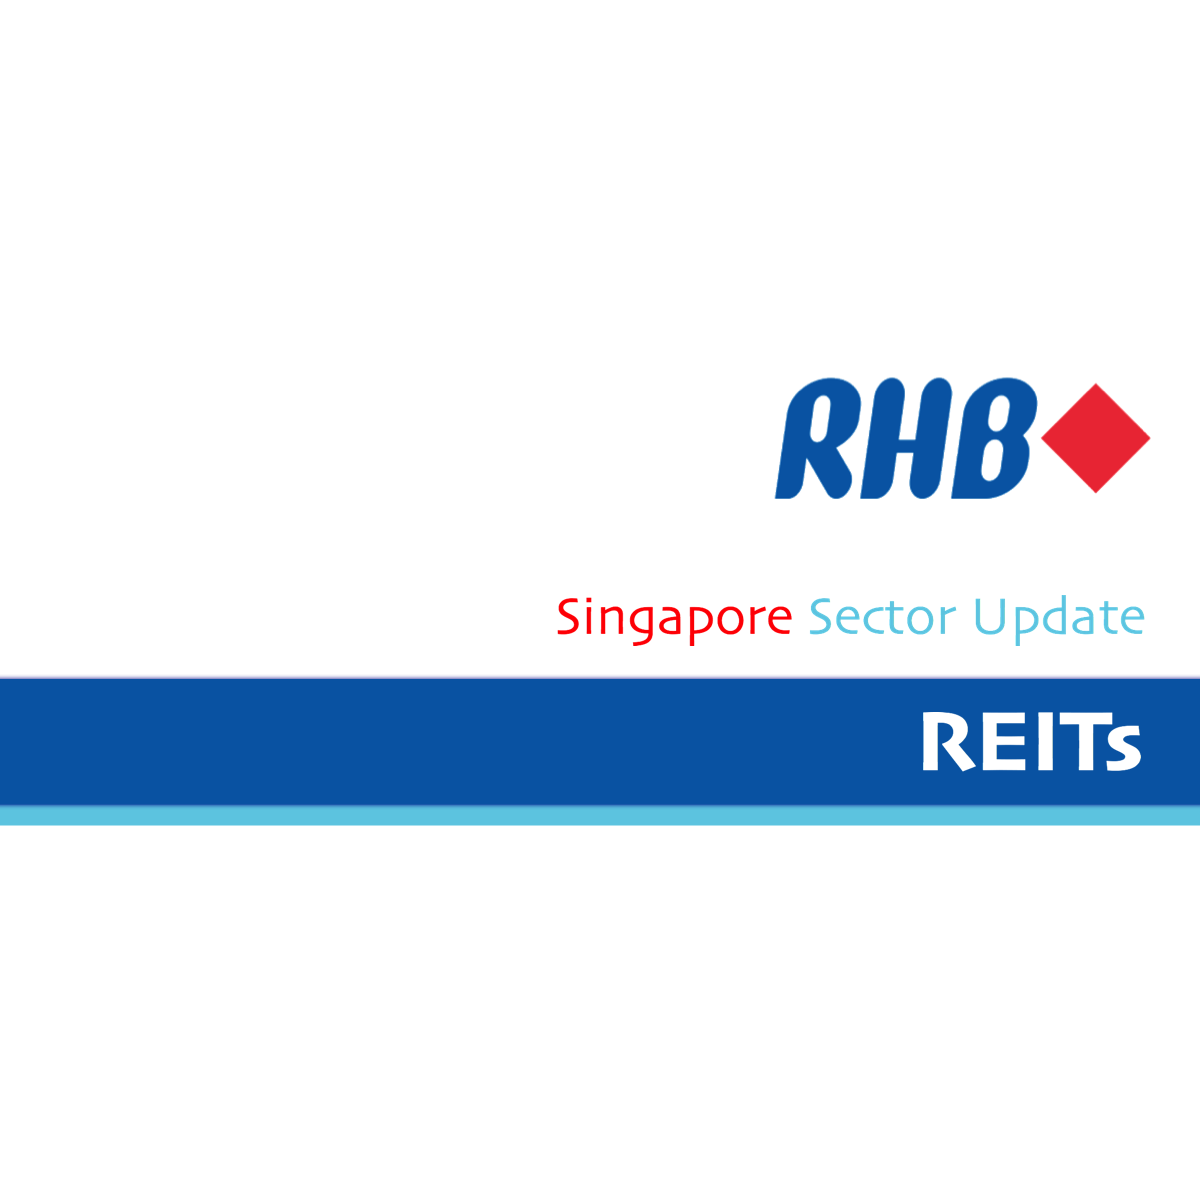 REITS Strategy 2018 - RHB Invest 2018-01-05: Stay Selective, Focus Shifts To Growth